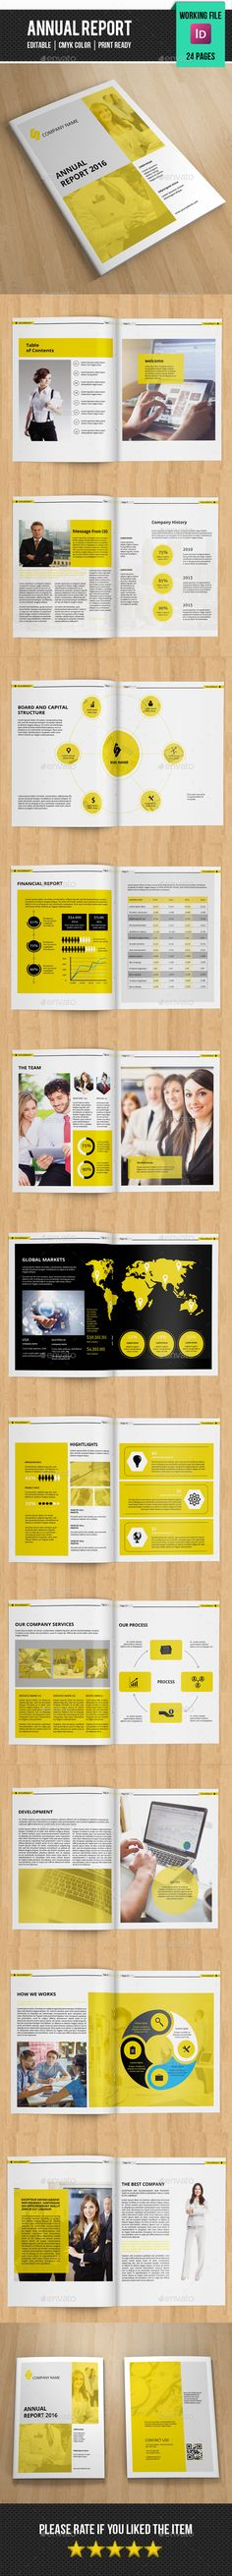 Annual Report Template InDesign INDD #design Download…